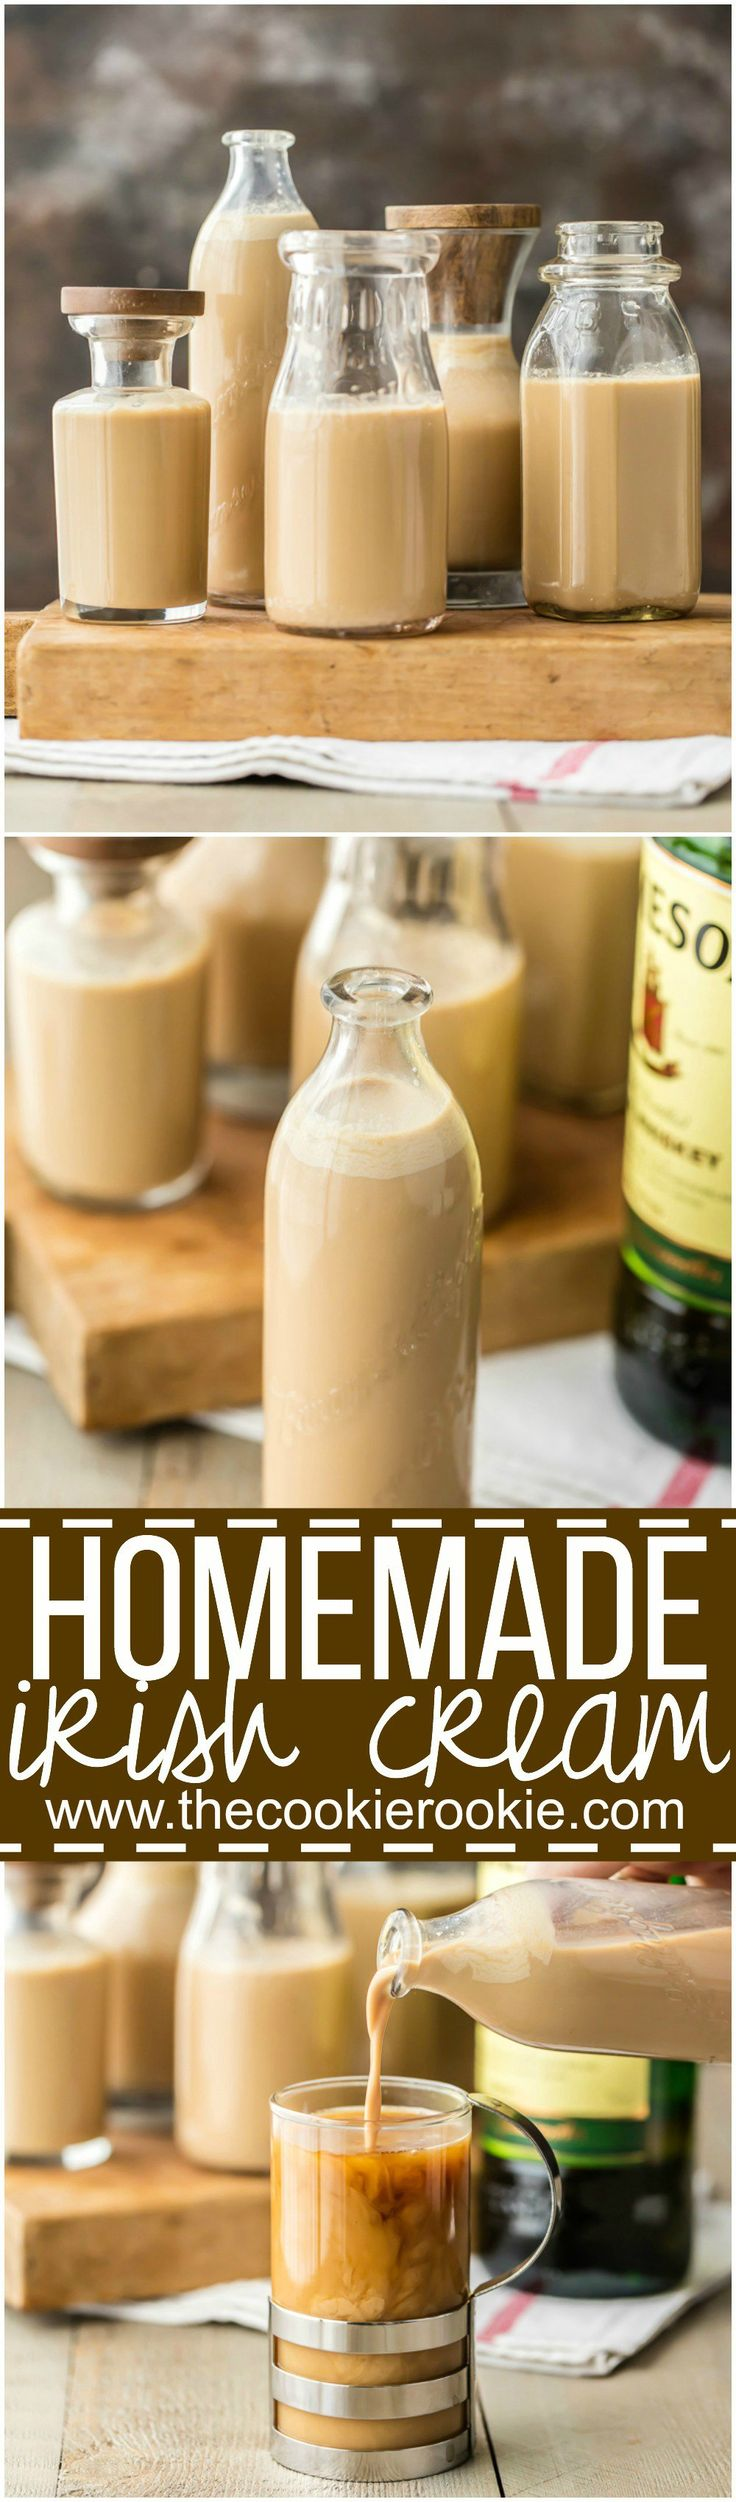 You will never guess how easy to make HOMEMADE IRISH CREAM at home and on the cheap! Such a great addition to cocktails, coffee, or ice cream. We always have a batch on hand! Perfect whiskey cocktail for St. Patrick's Day!